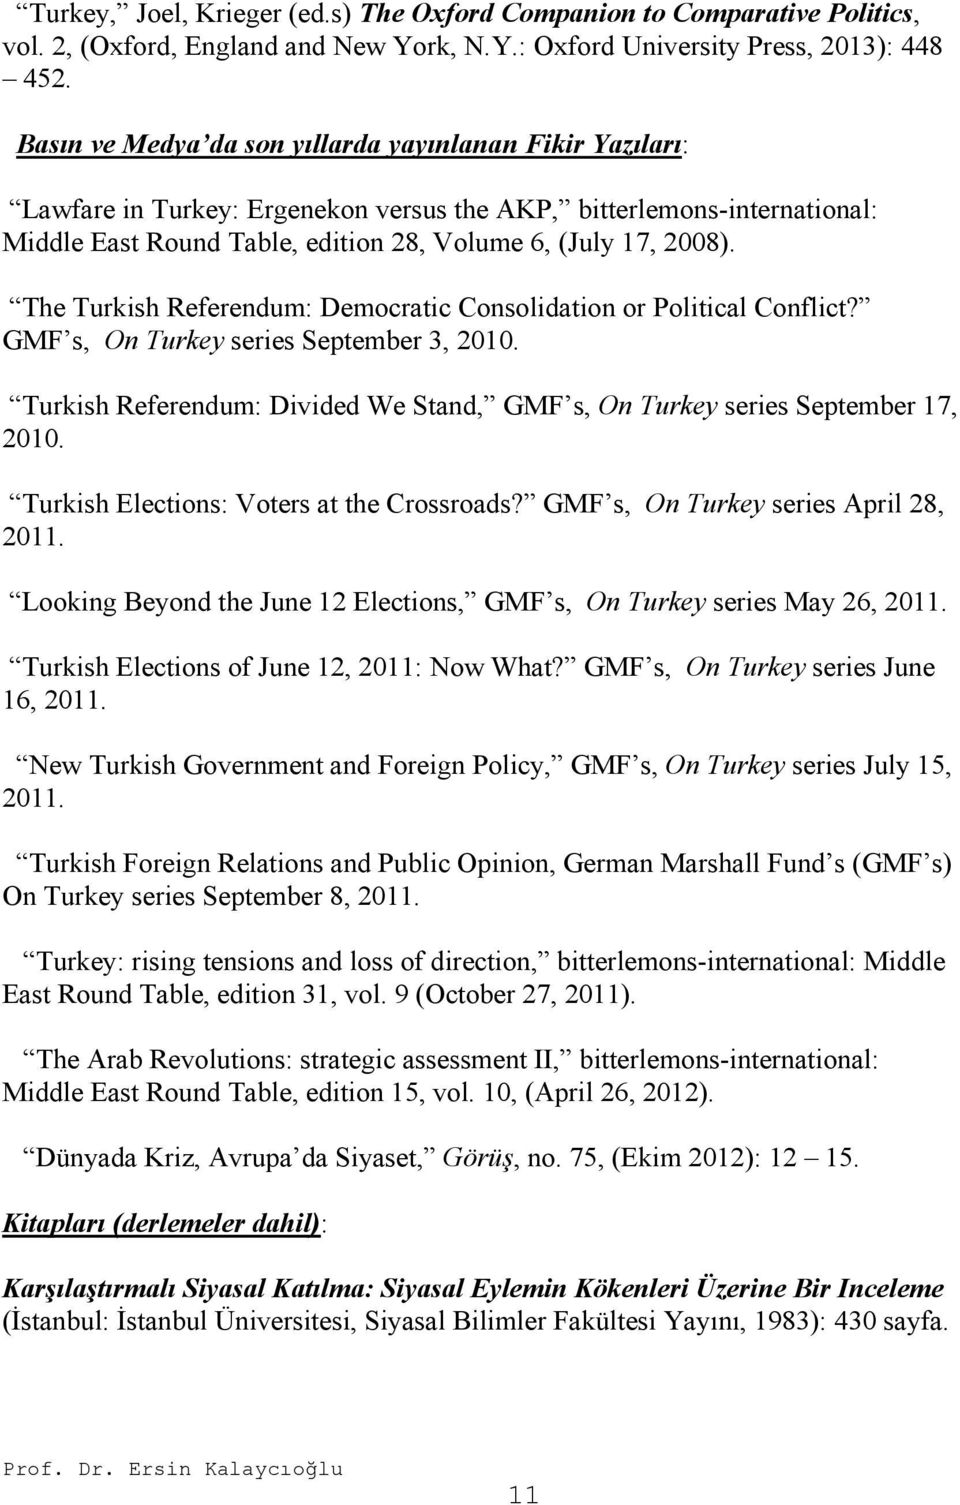 The Turkish Referendum: Democratic Consolidation or Political Conflict? GMF s, On Turkey series September 3, 2010. Turkish Referendum: Divided We Stand, GMF s, On Turkey series September 17, 2010.